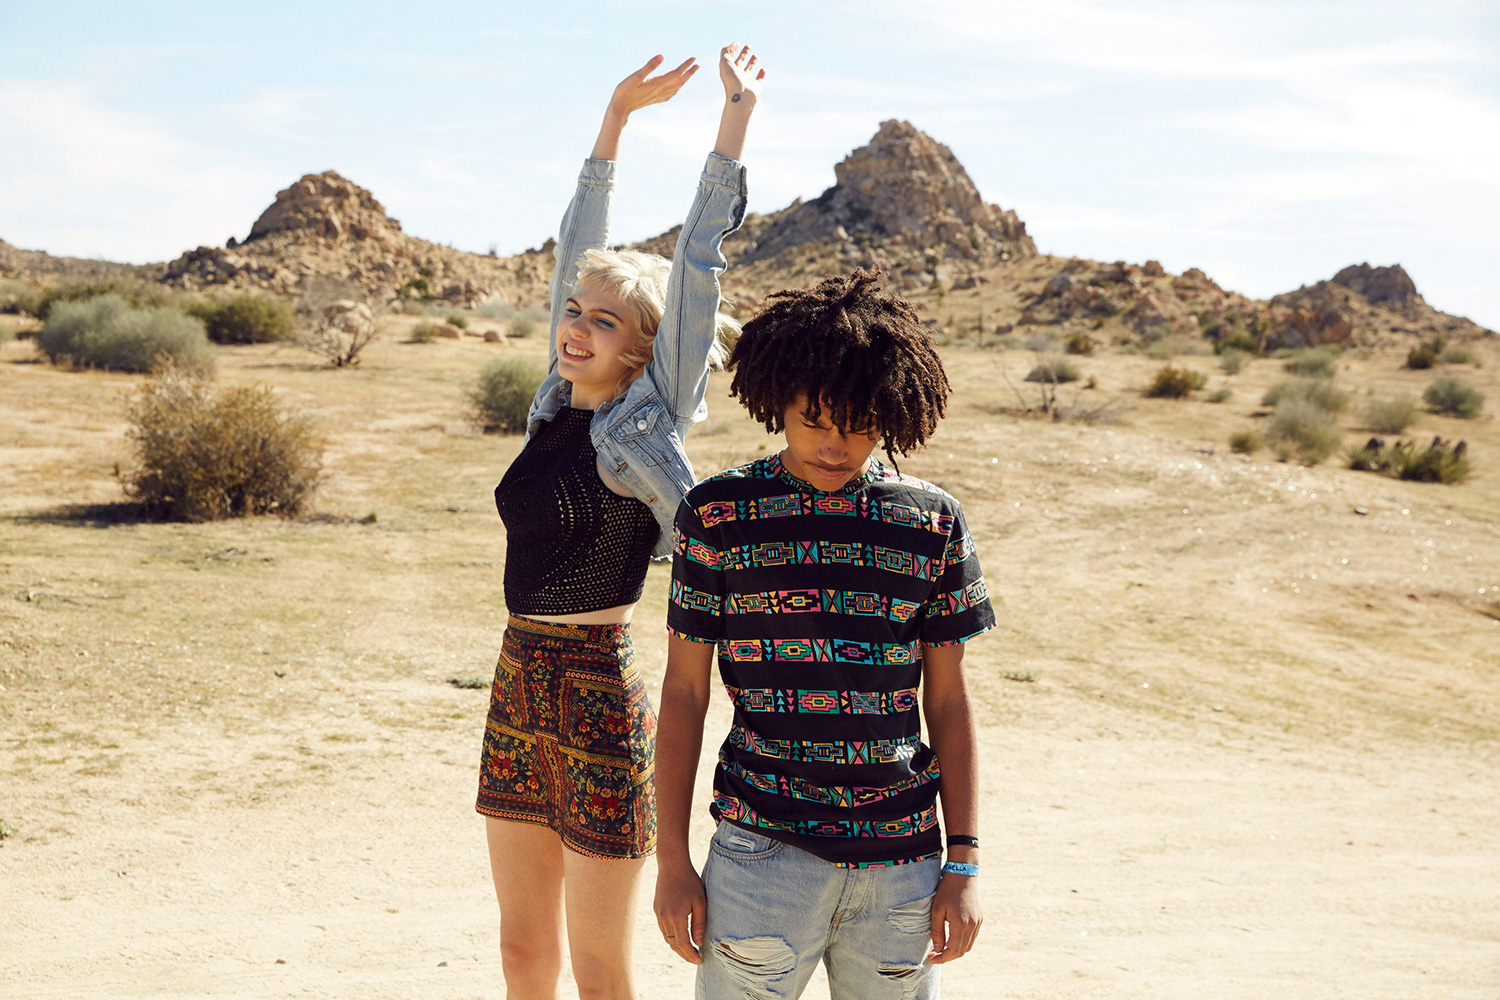 H&M Set To Drop Another Co-Branded Collection for Coachella